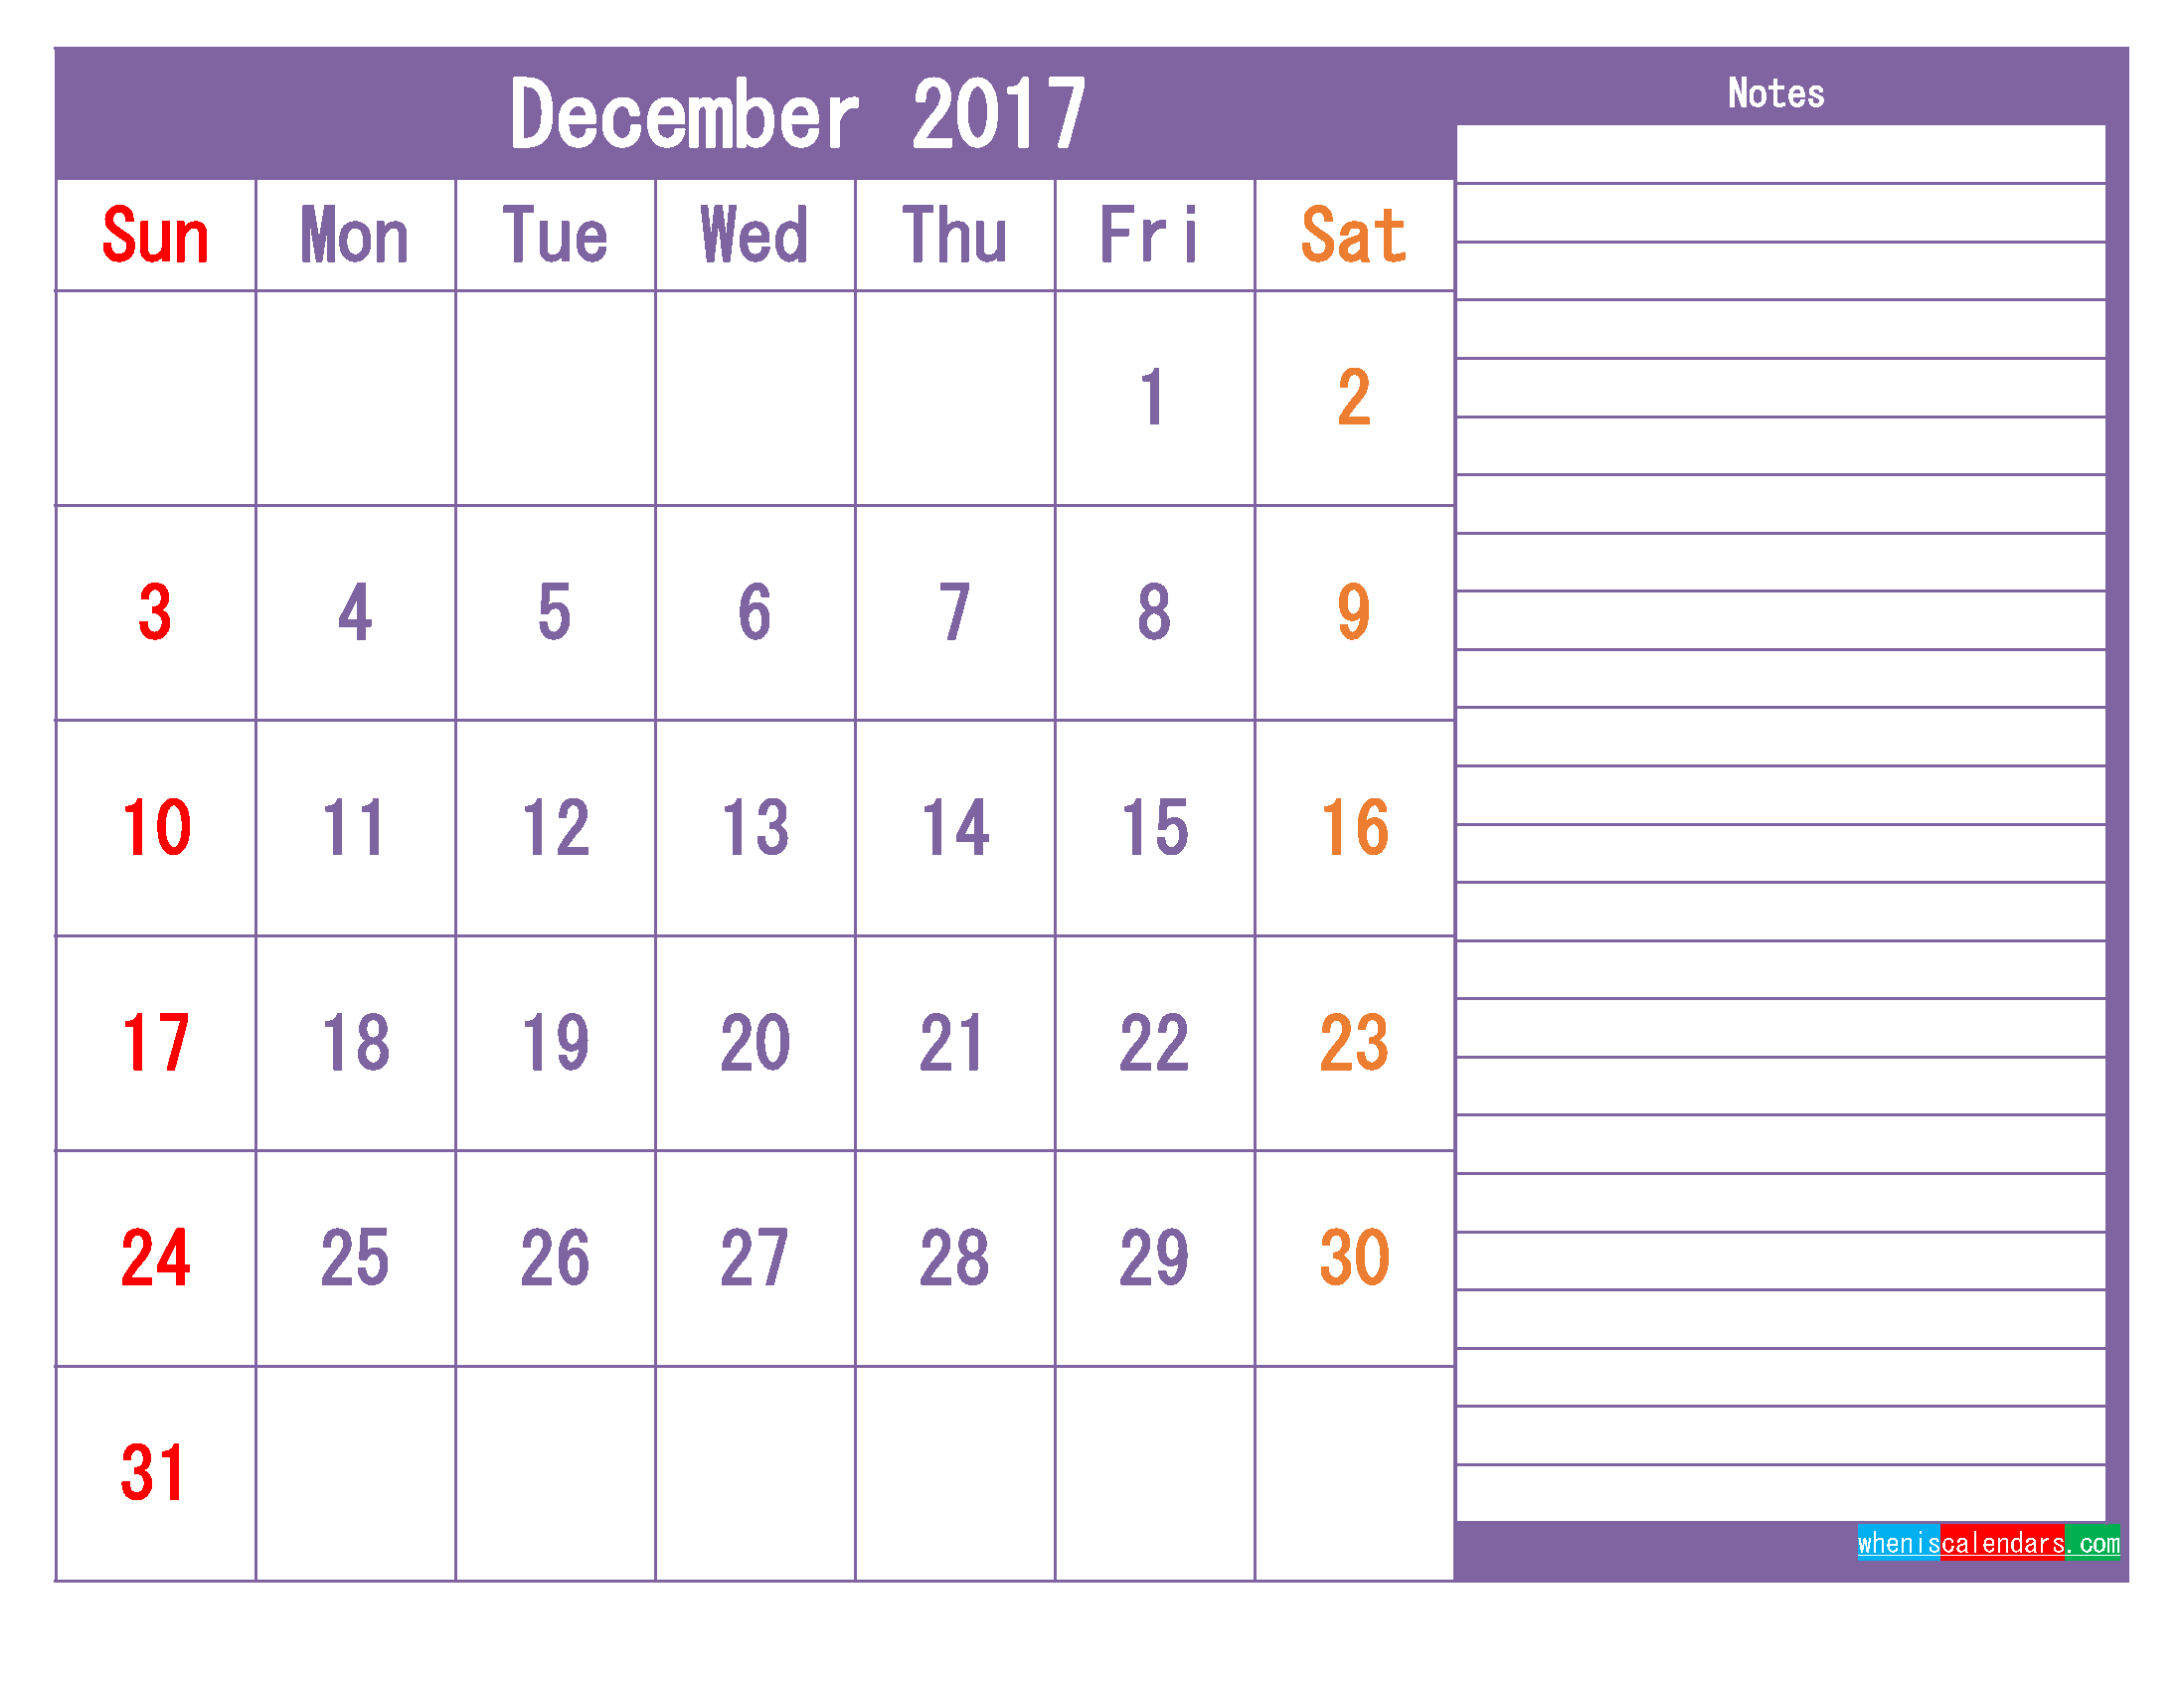 December 2017 Printable Calendar Template as PDF and PNG